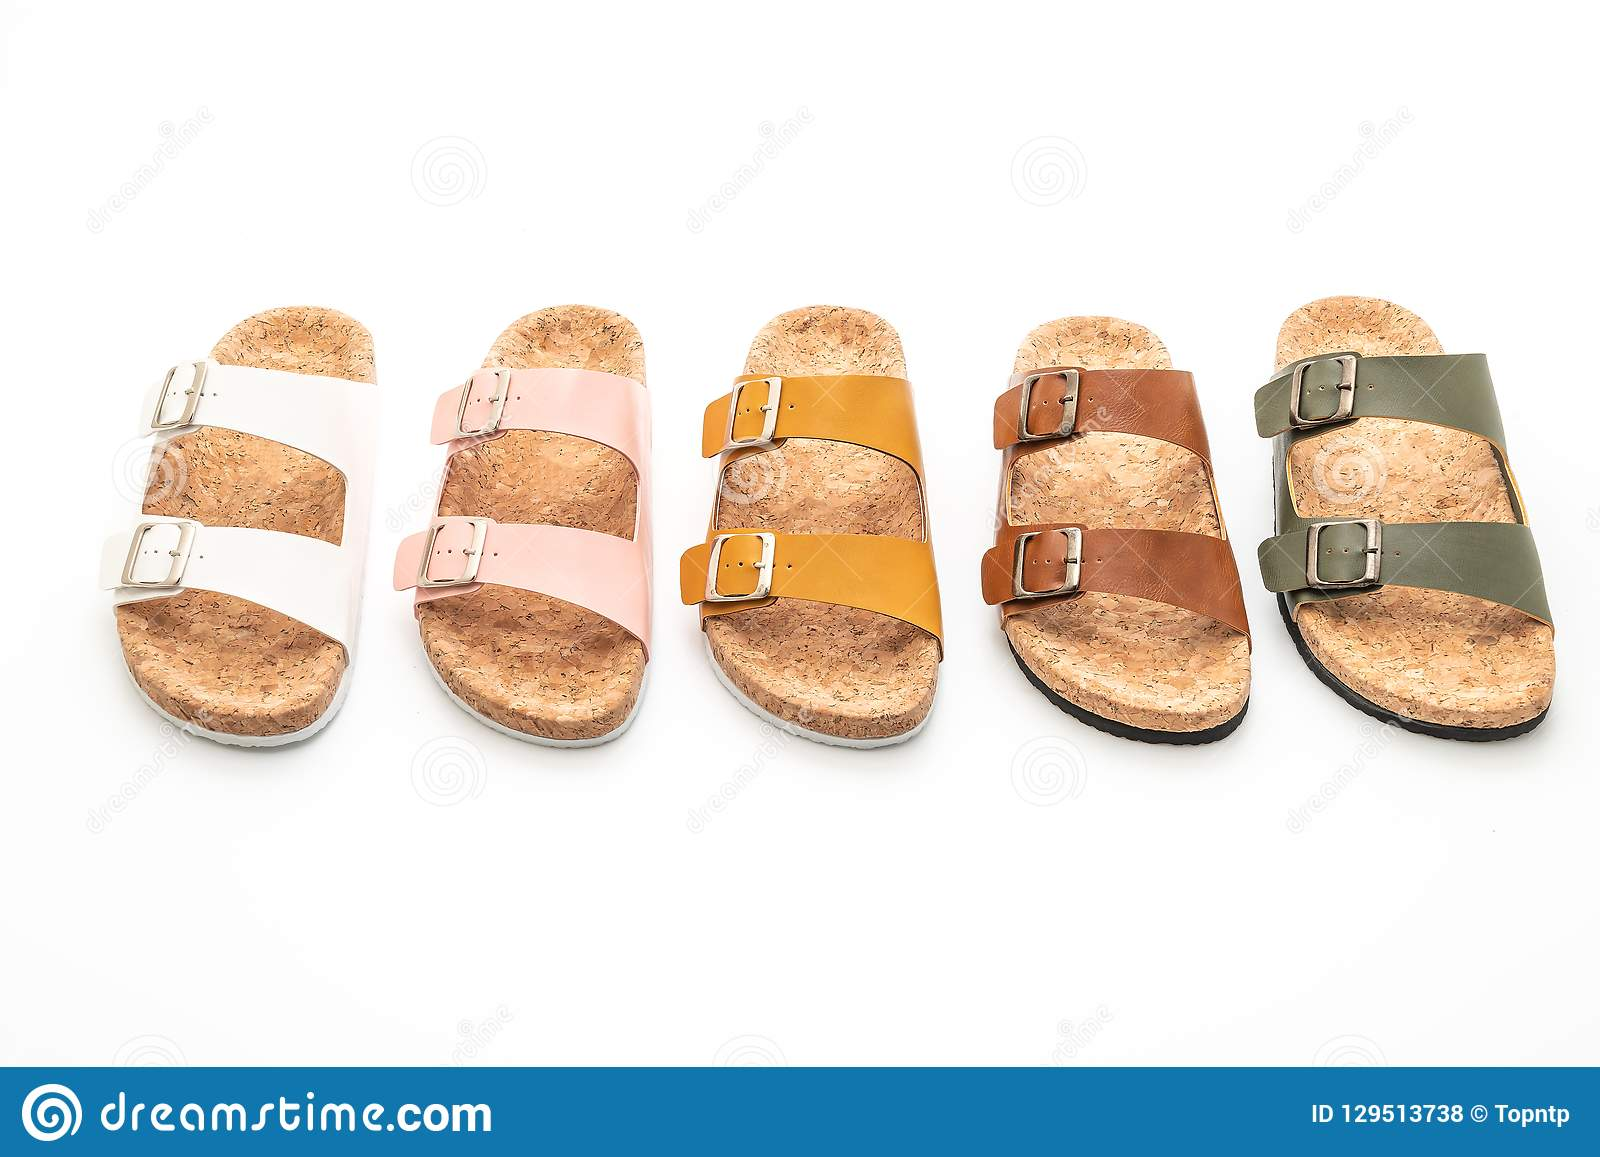 eefd6dd53 Men s And Women s (unisex) Fashion Leather Sandals Stock Photo ...